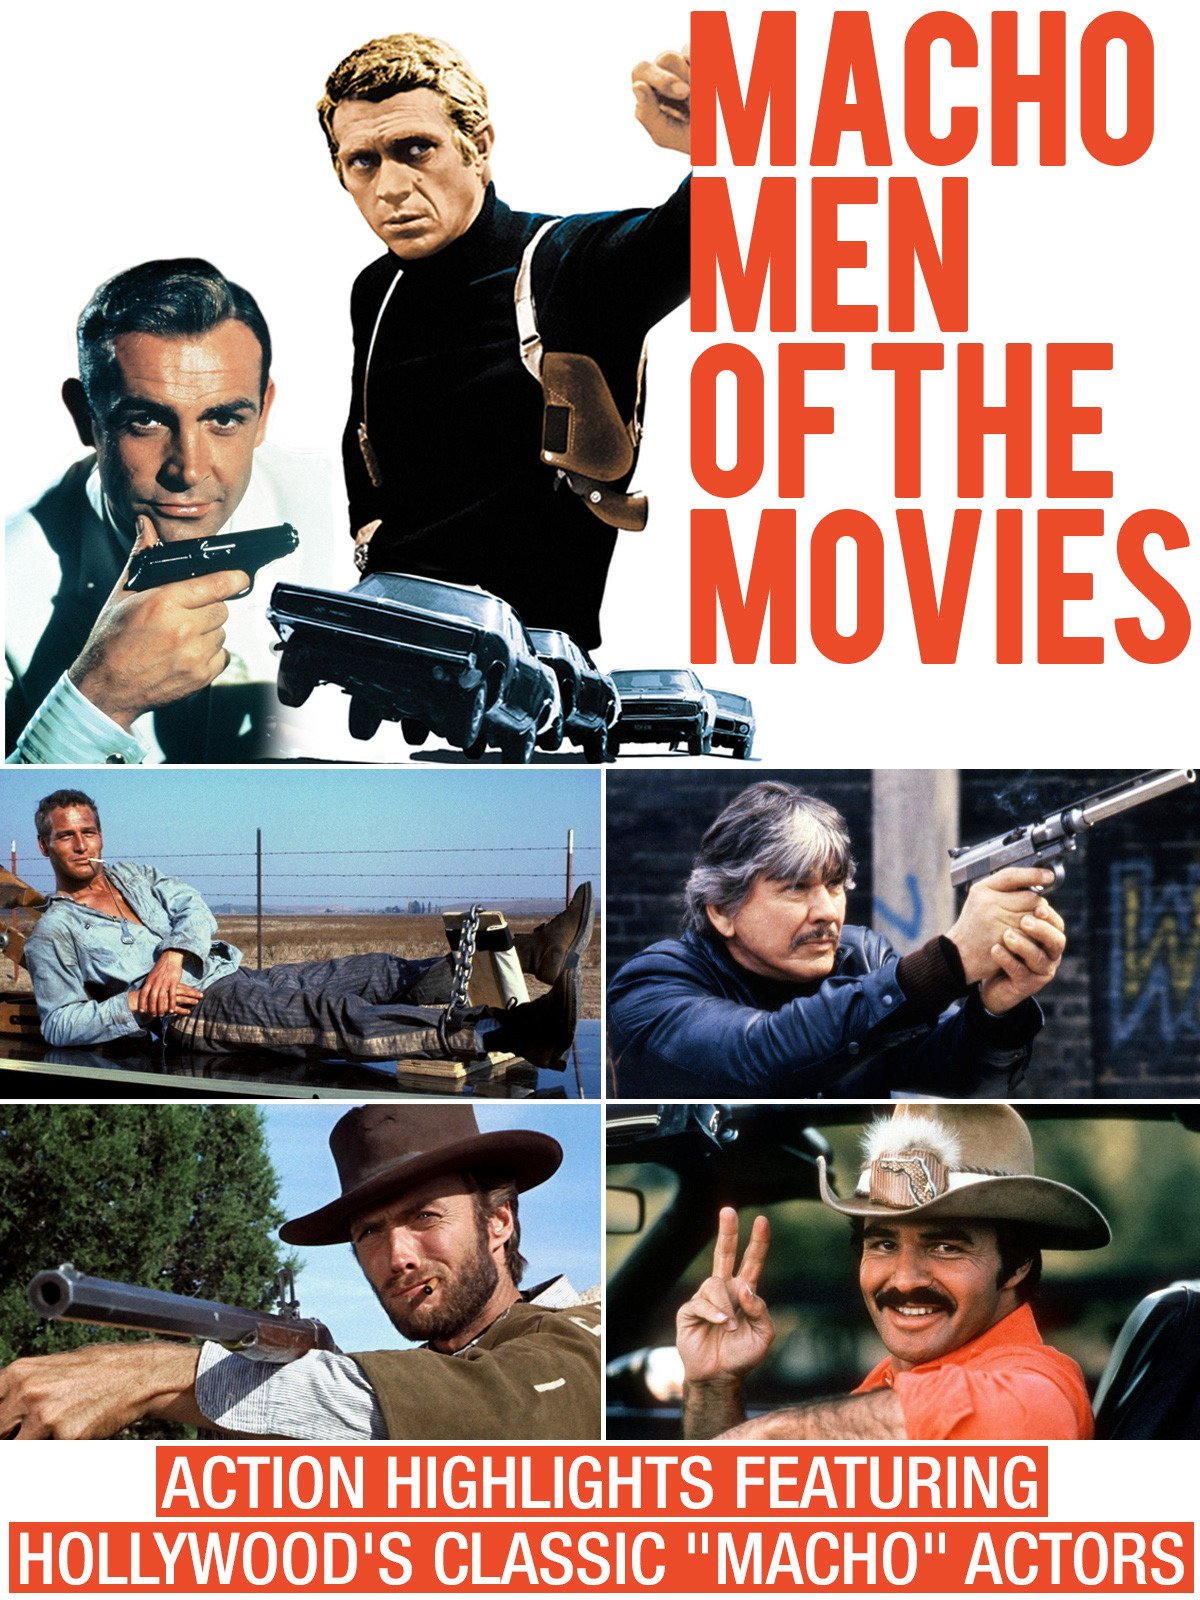 Macho Men of the Movies - Action Highlights Featuring Hollywood's Classic Macho Actors